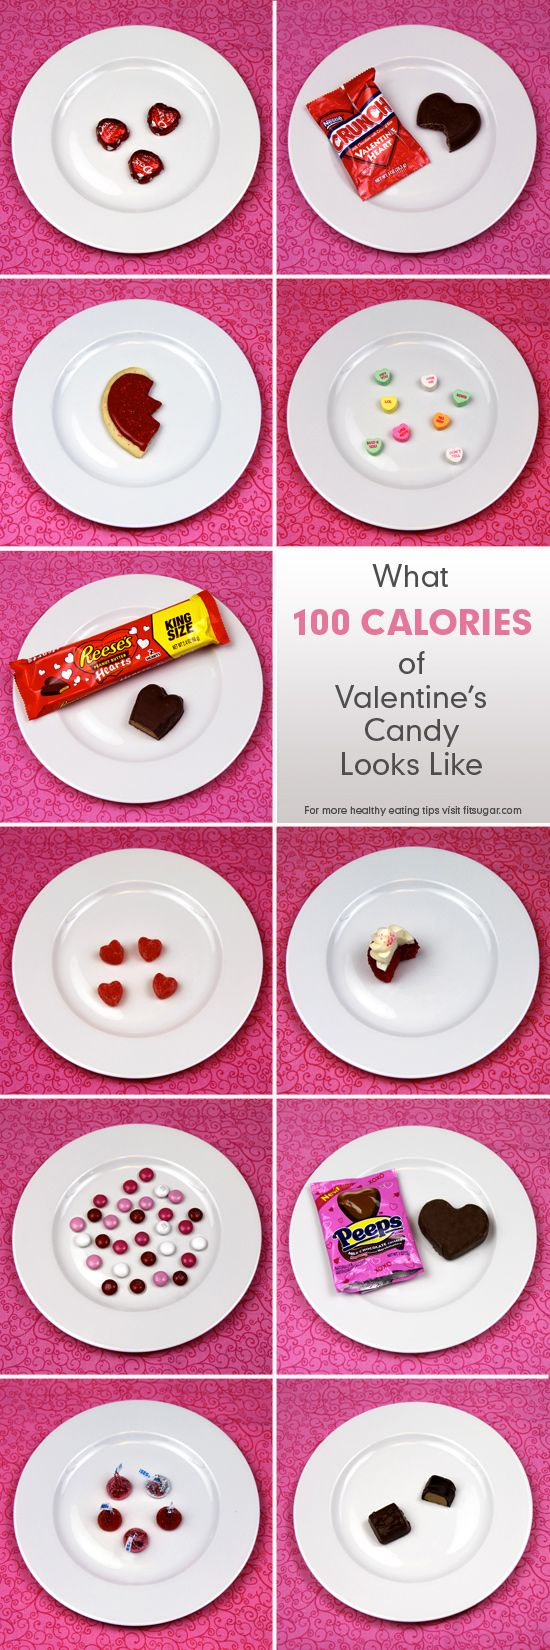 calories in valentine's day chocolate